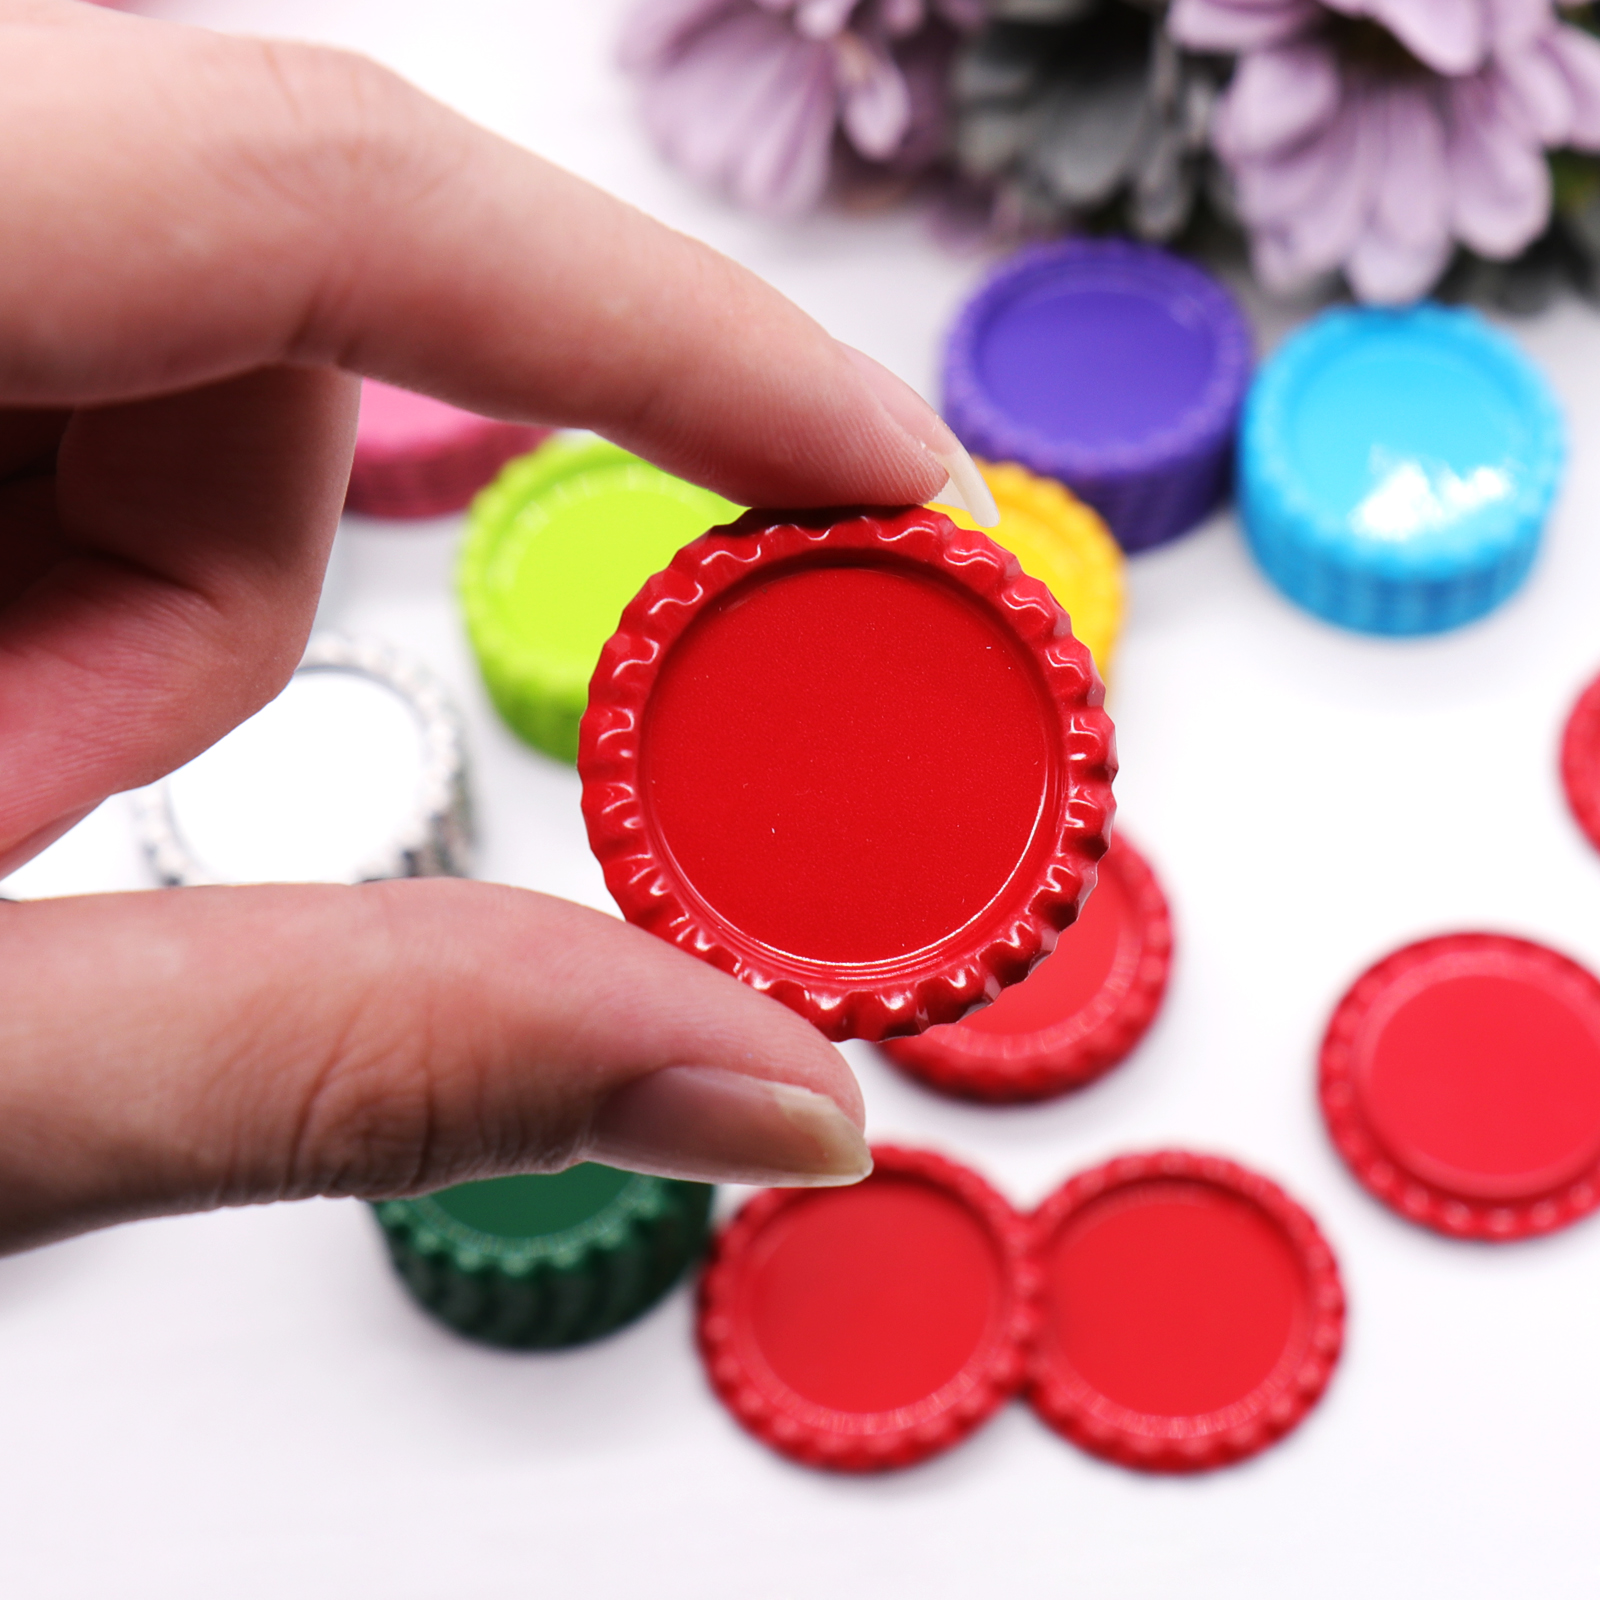 10 Pcs /lot 3.5cm Flattened Beer Bottle Caps Bottle Lids For DIY Crafts Hair Bow,Necklace Accessories DIY Hanging Decorations